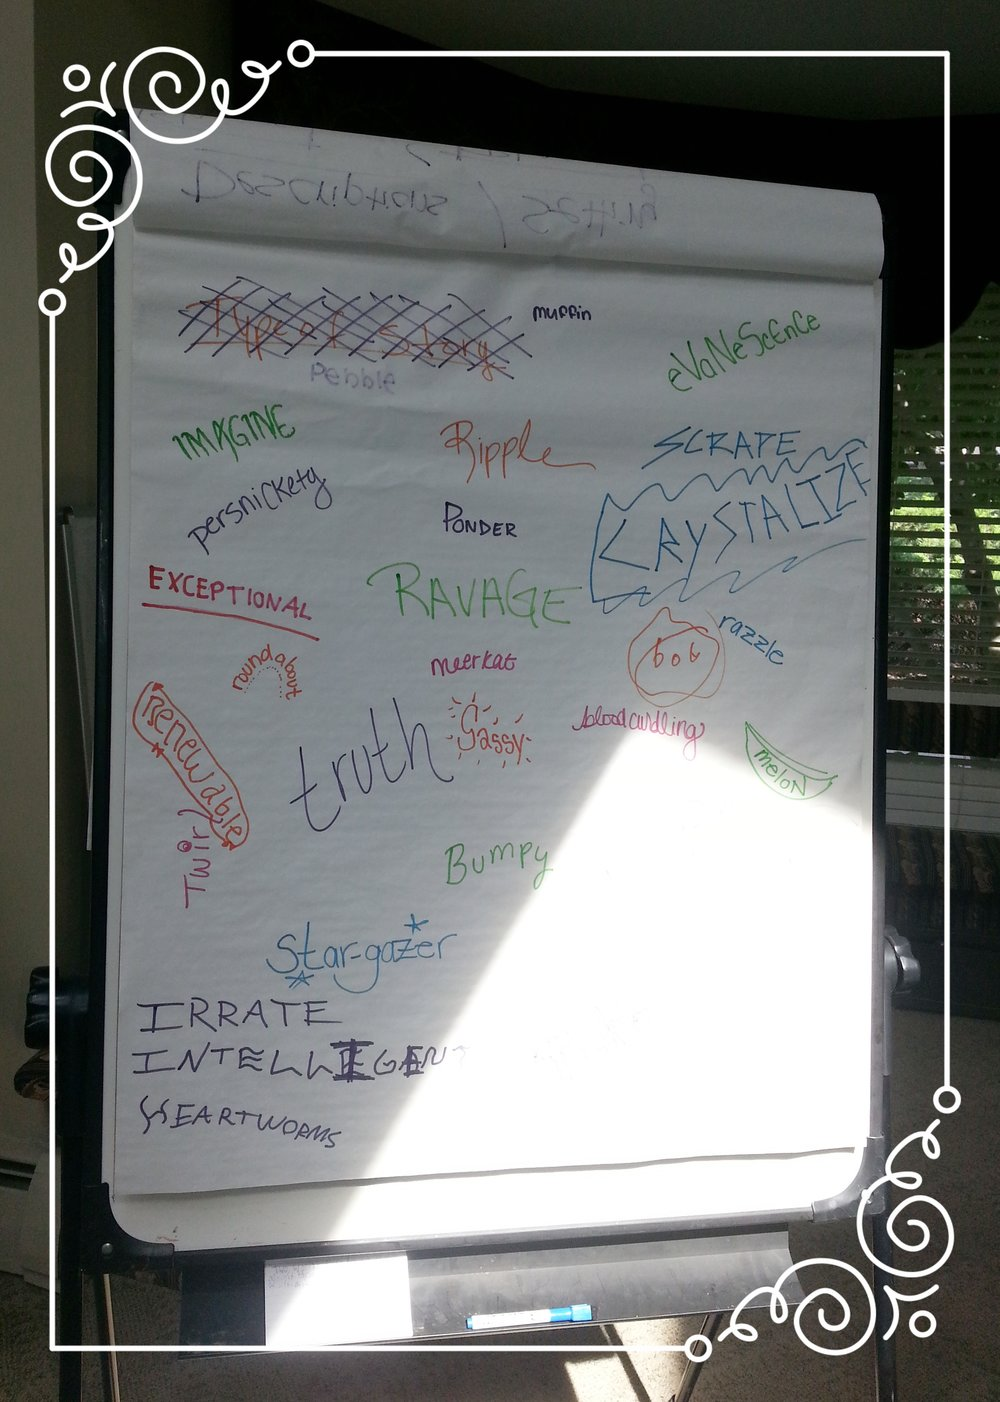 We Love Words! - one exercise we workshop together is collecting words: interesting, unusual, and common words. Words we love the sound of. Words we love to shout or whisper. Words that make us laugh out loud, or give us a crystal clear image. Words are powerful.